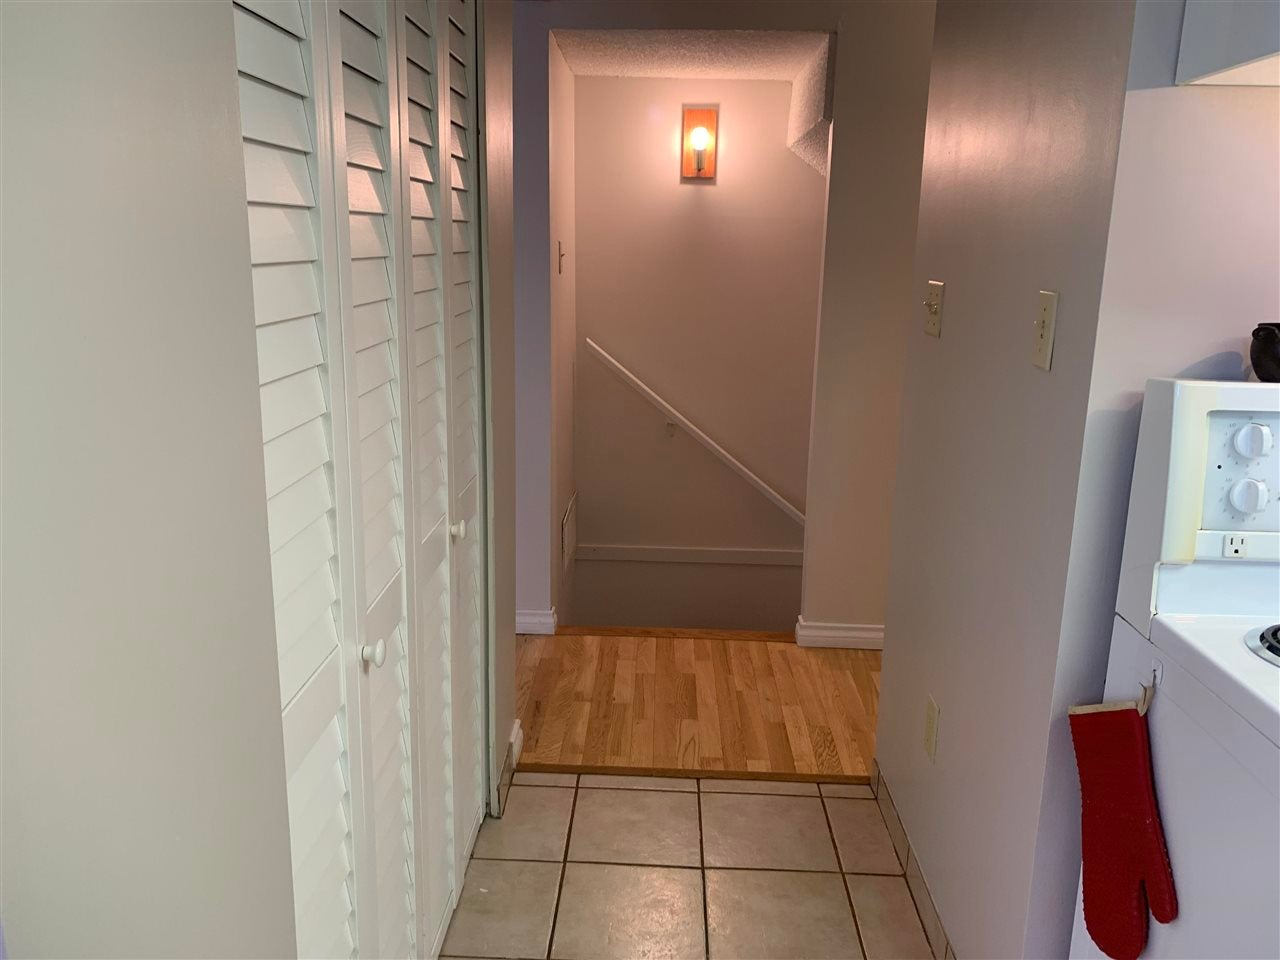 2 230 W 15TH STREET - Central Lonsdale Townhouse for sale, 3 Bedrooms (R2572749) - #15